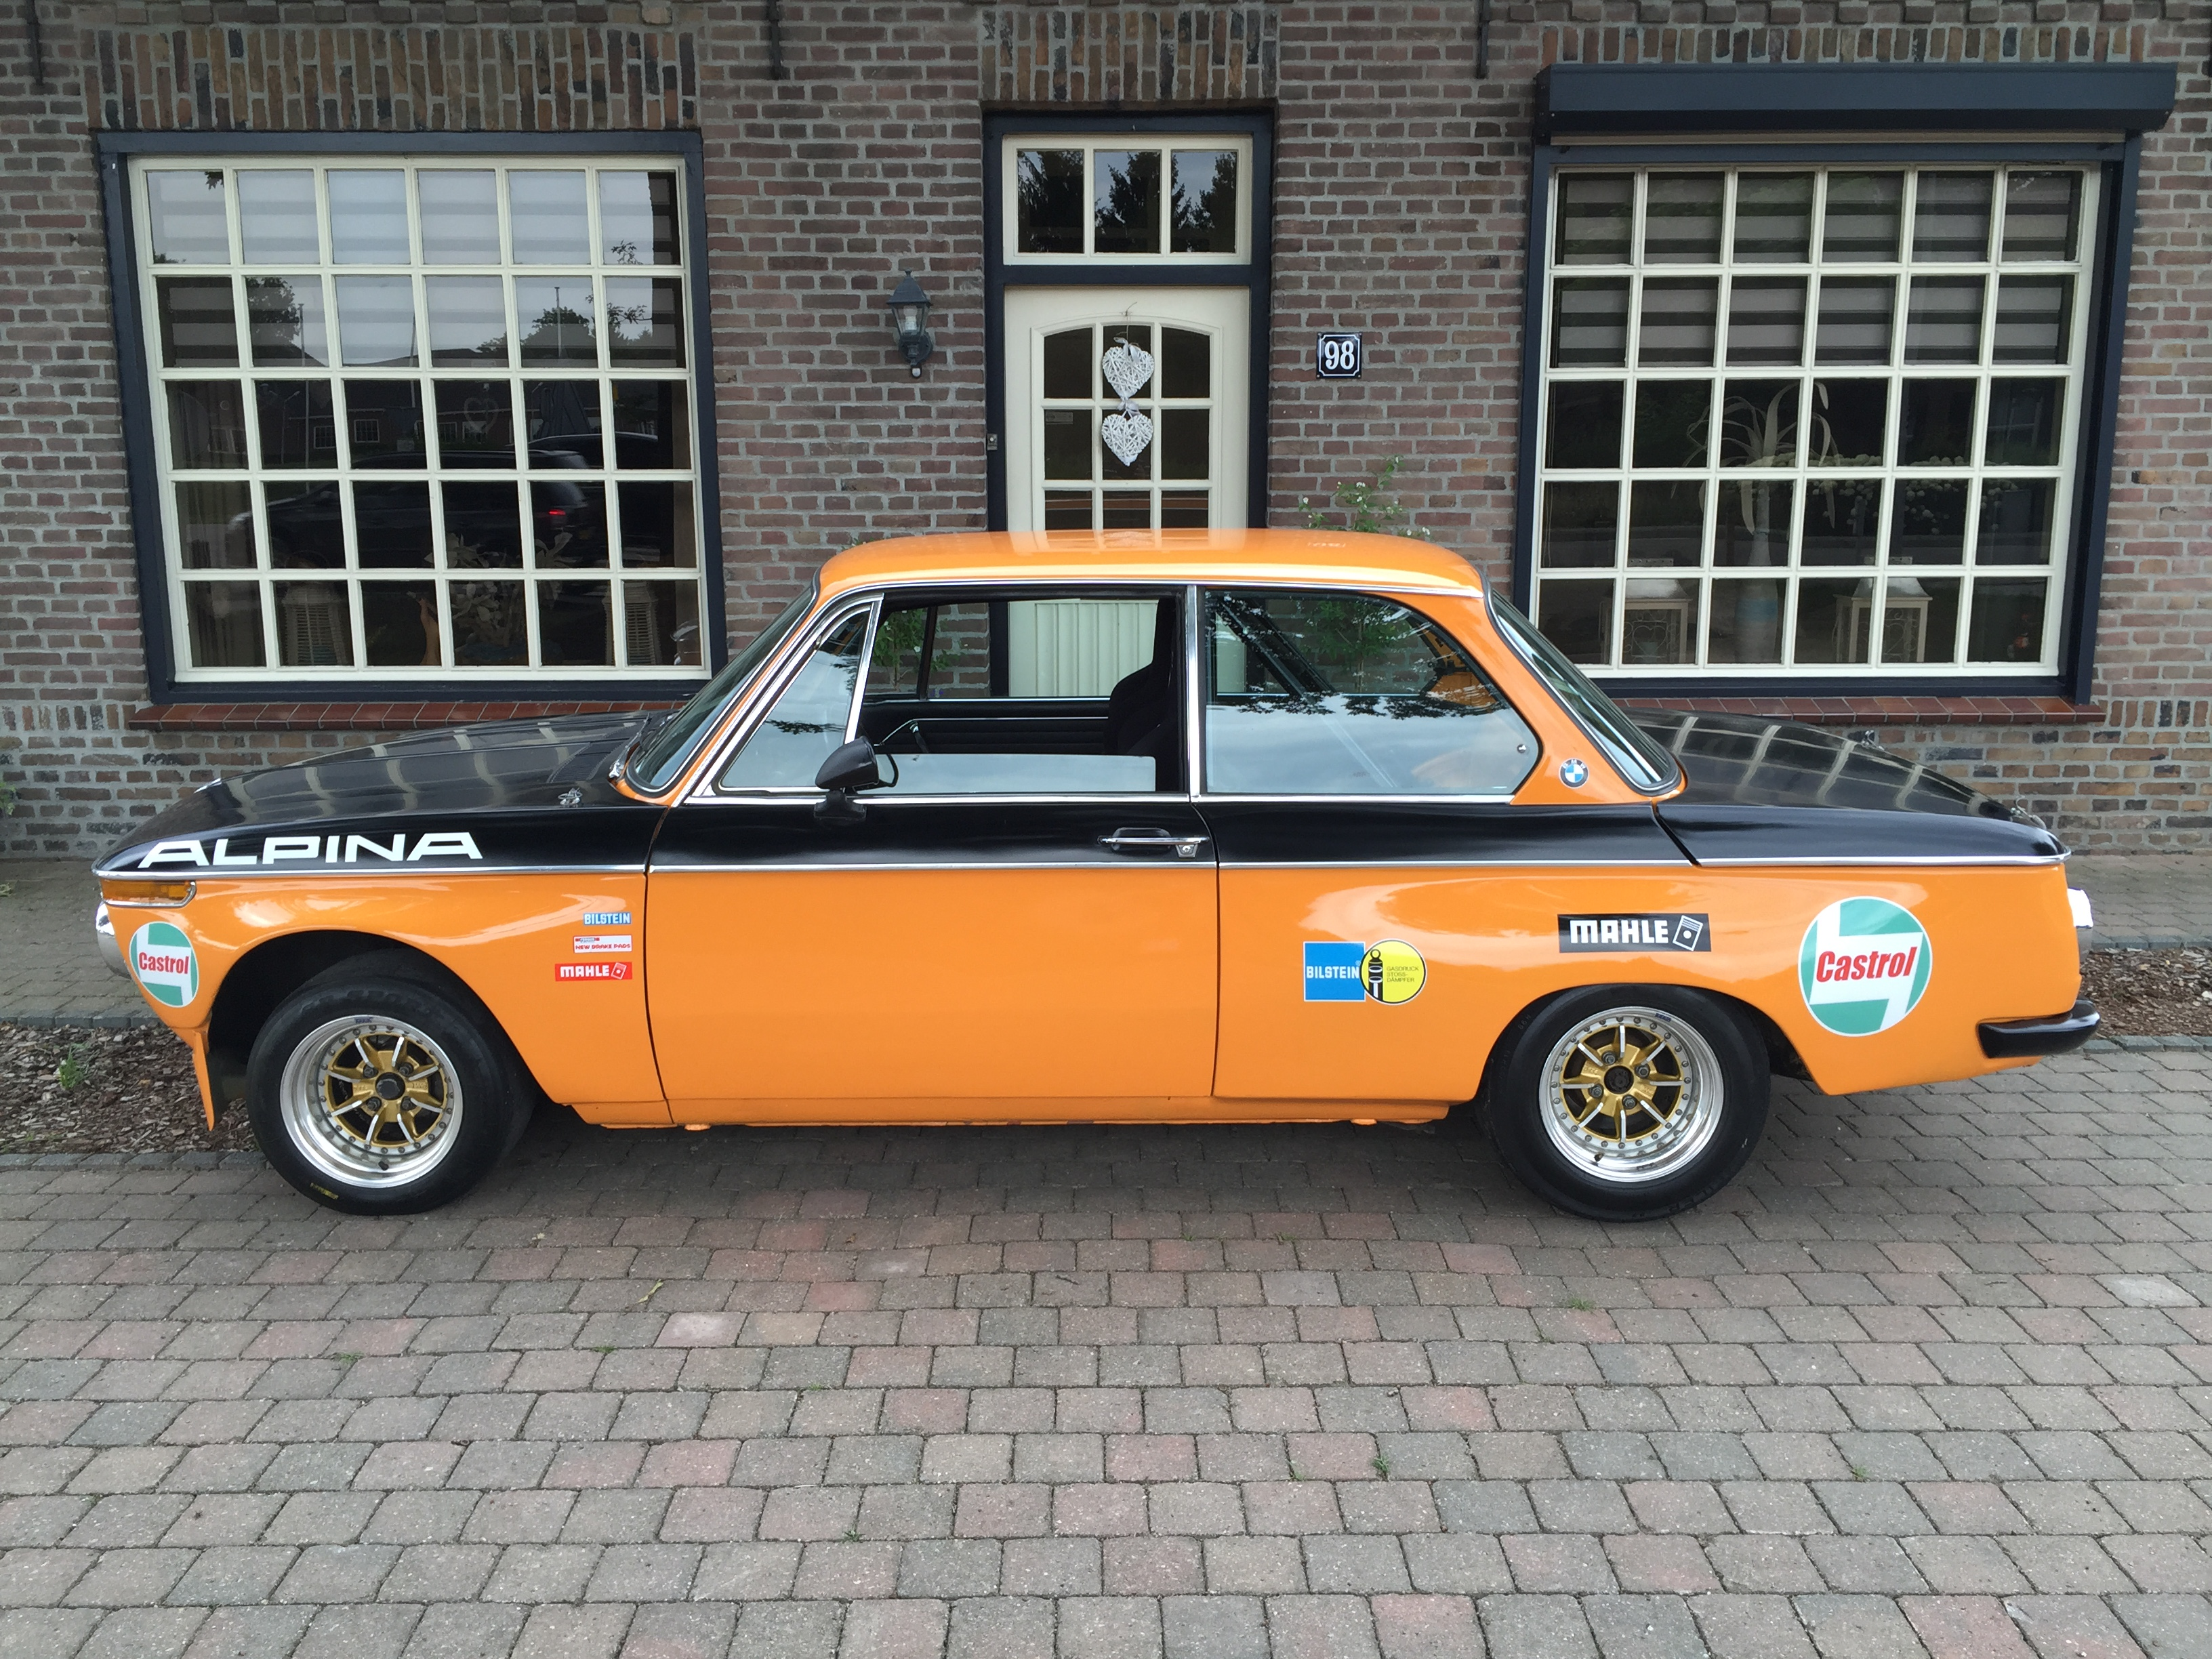 Bmw 2002ti Alpina Gr 2 Bmw 2002 And Neue Klasse Cars For Sale Wanted Bmw 2002 Faq